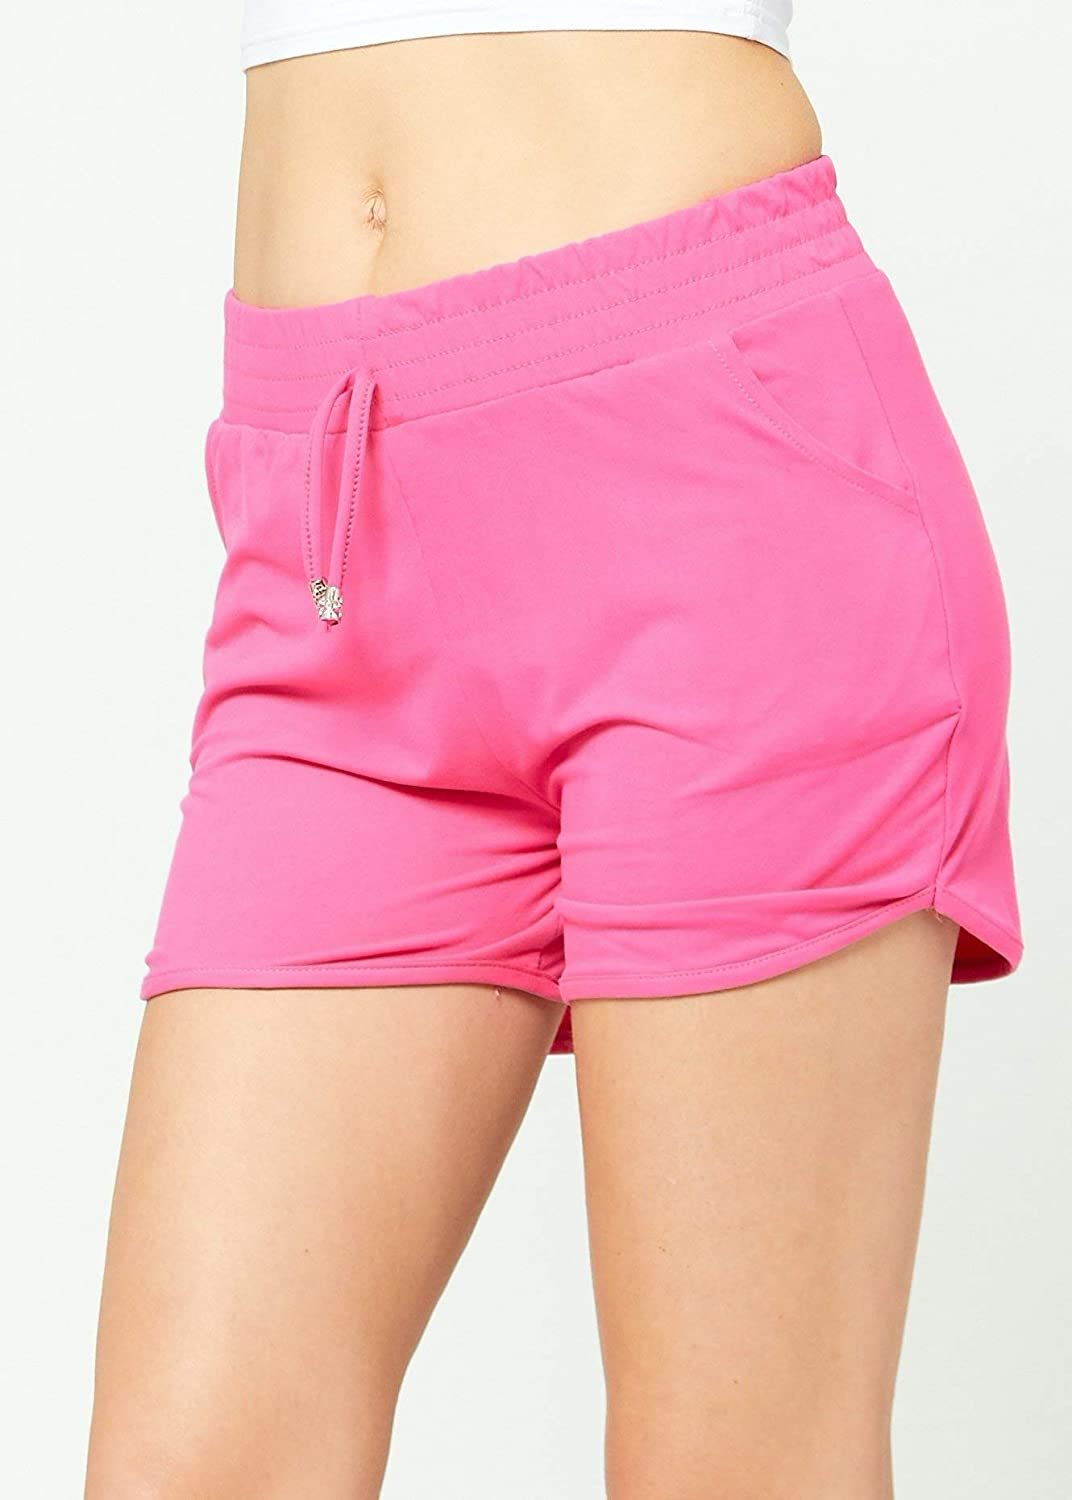 Premium Ultra Soft Drawstring Shorts Pockets 40 Trending Prints